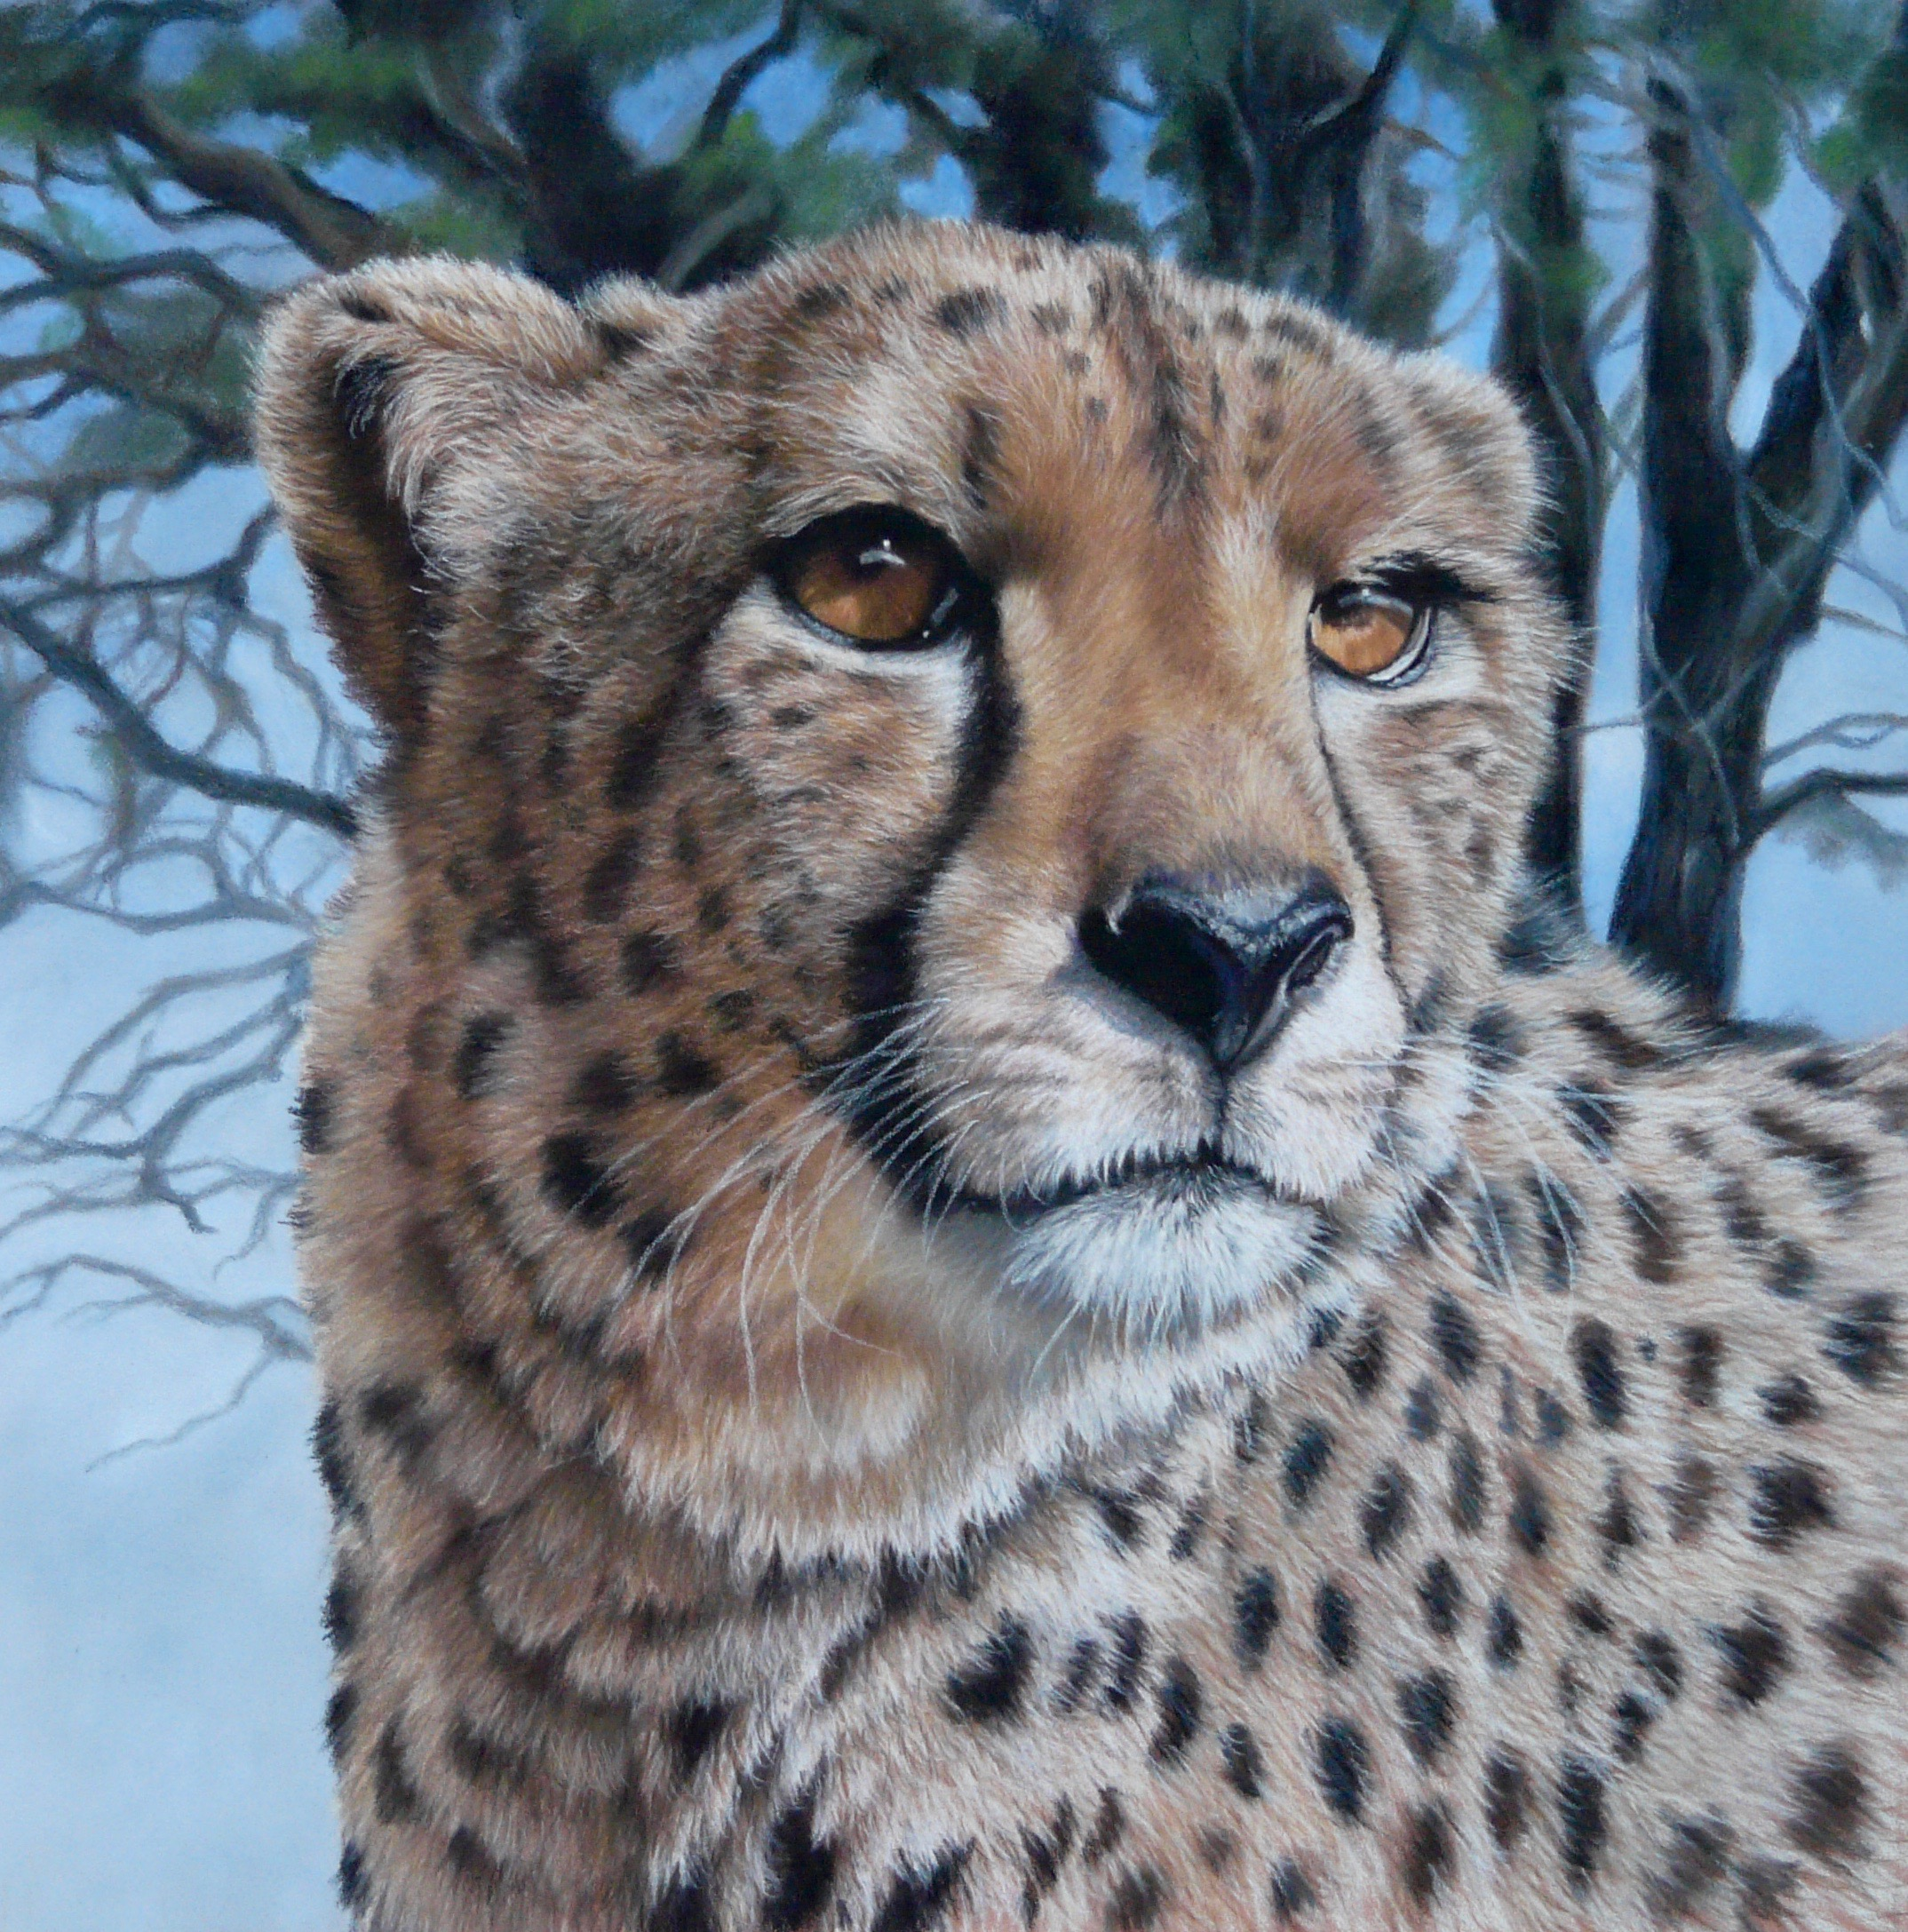 """Distant Gaze"" By Kerry M Vaughan (cheetah portrait) Unframed Limited edition giclee print of 25. Fits frame 16"" x16"". £50 plus p&p"